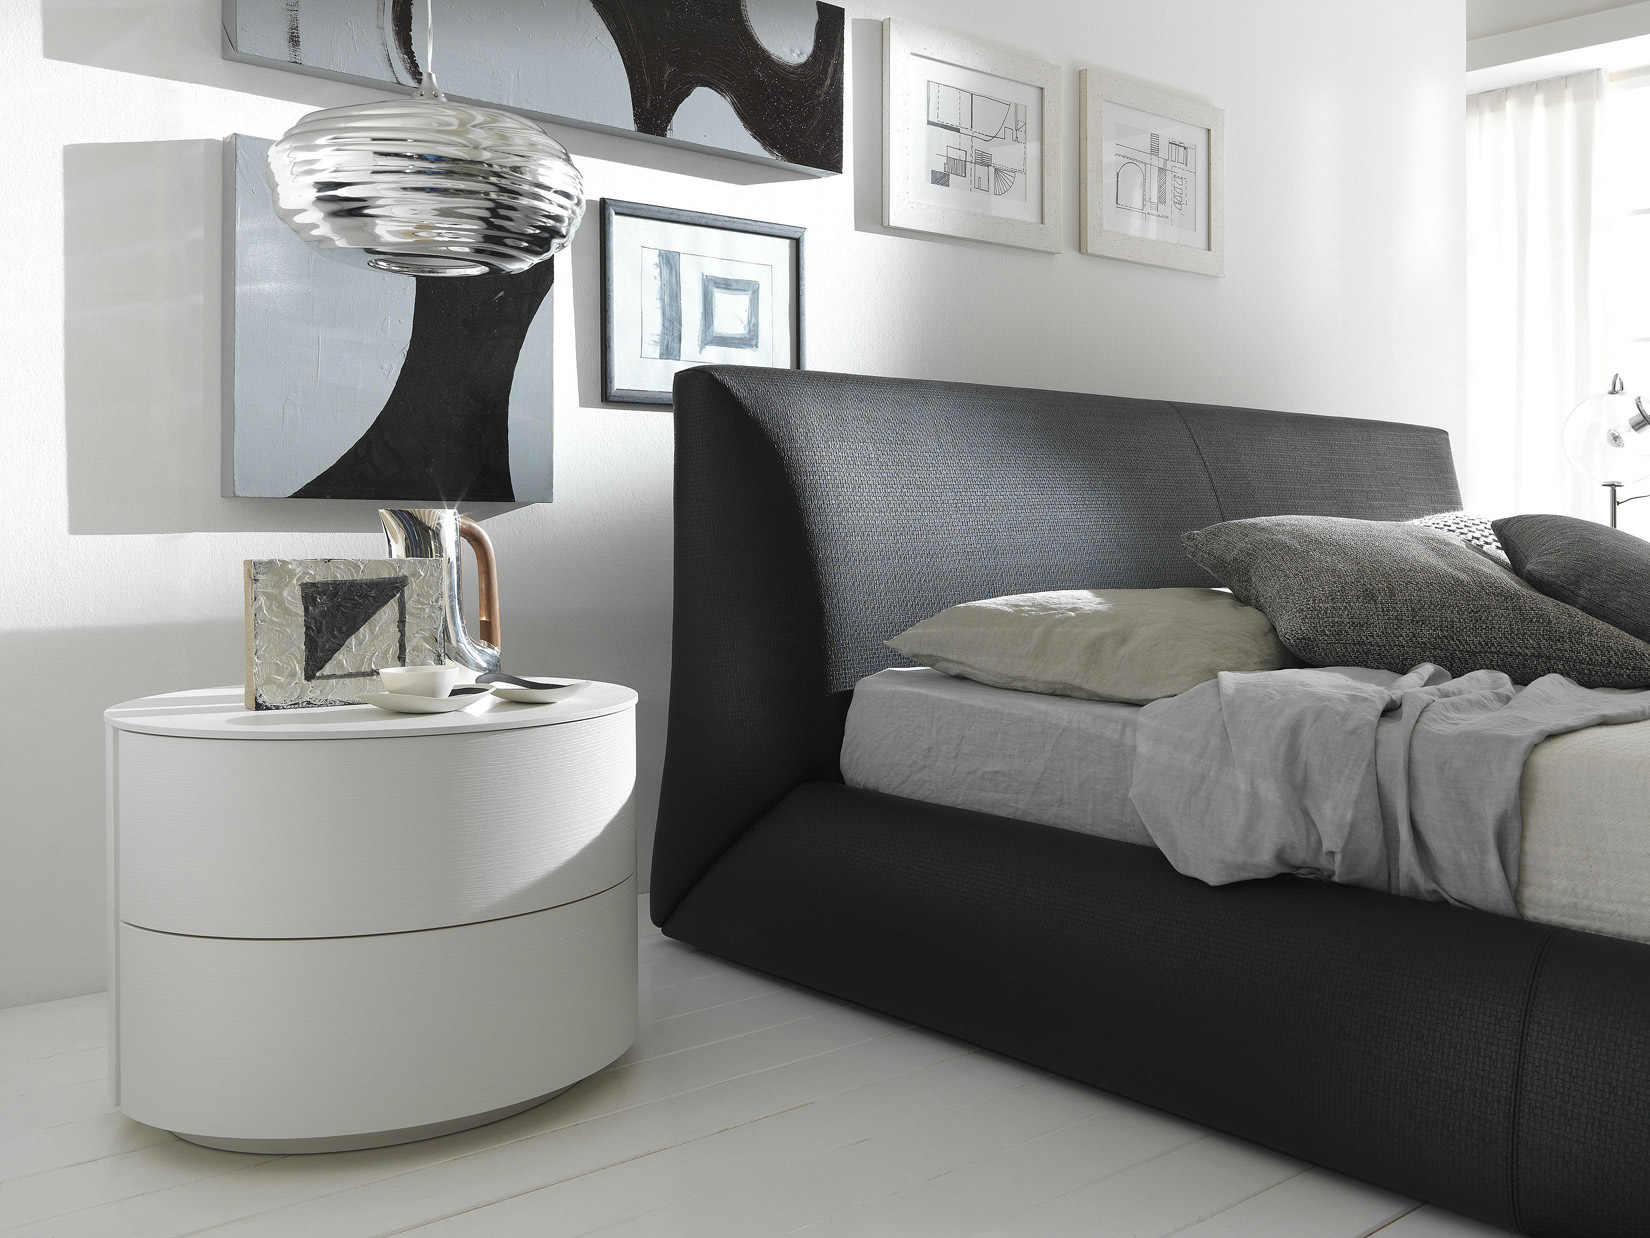 Modern Black Contemporary Nightstands (View 8 of 10)